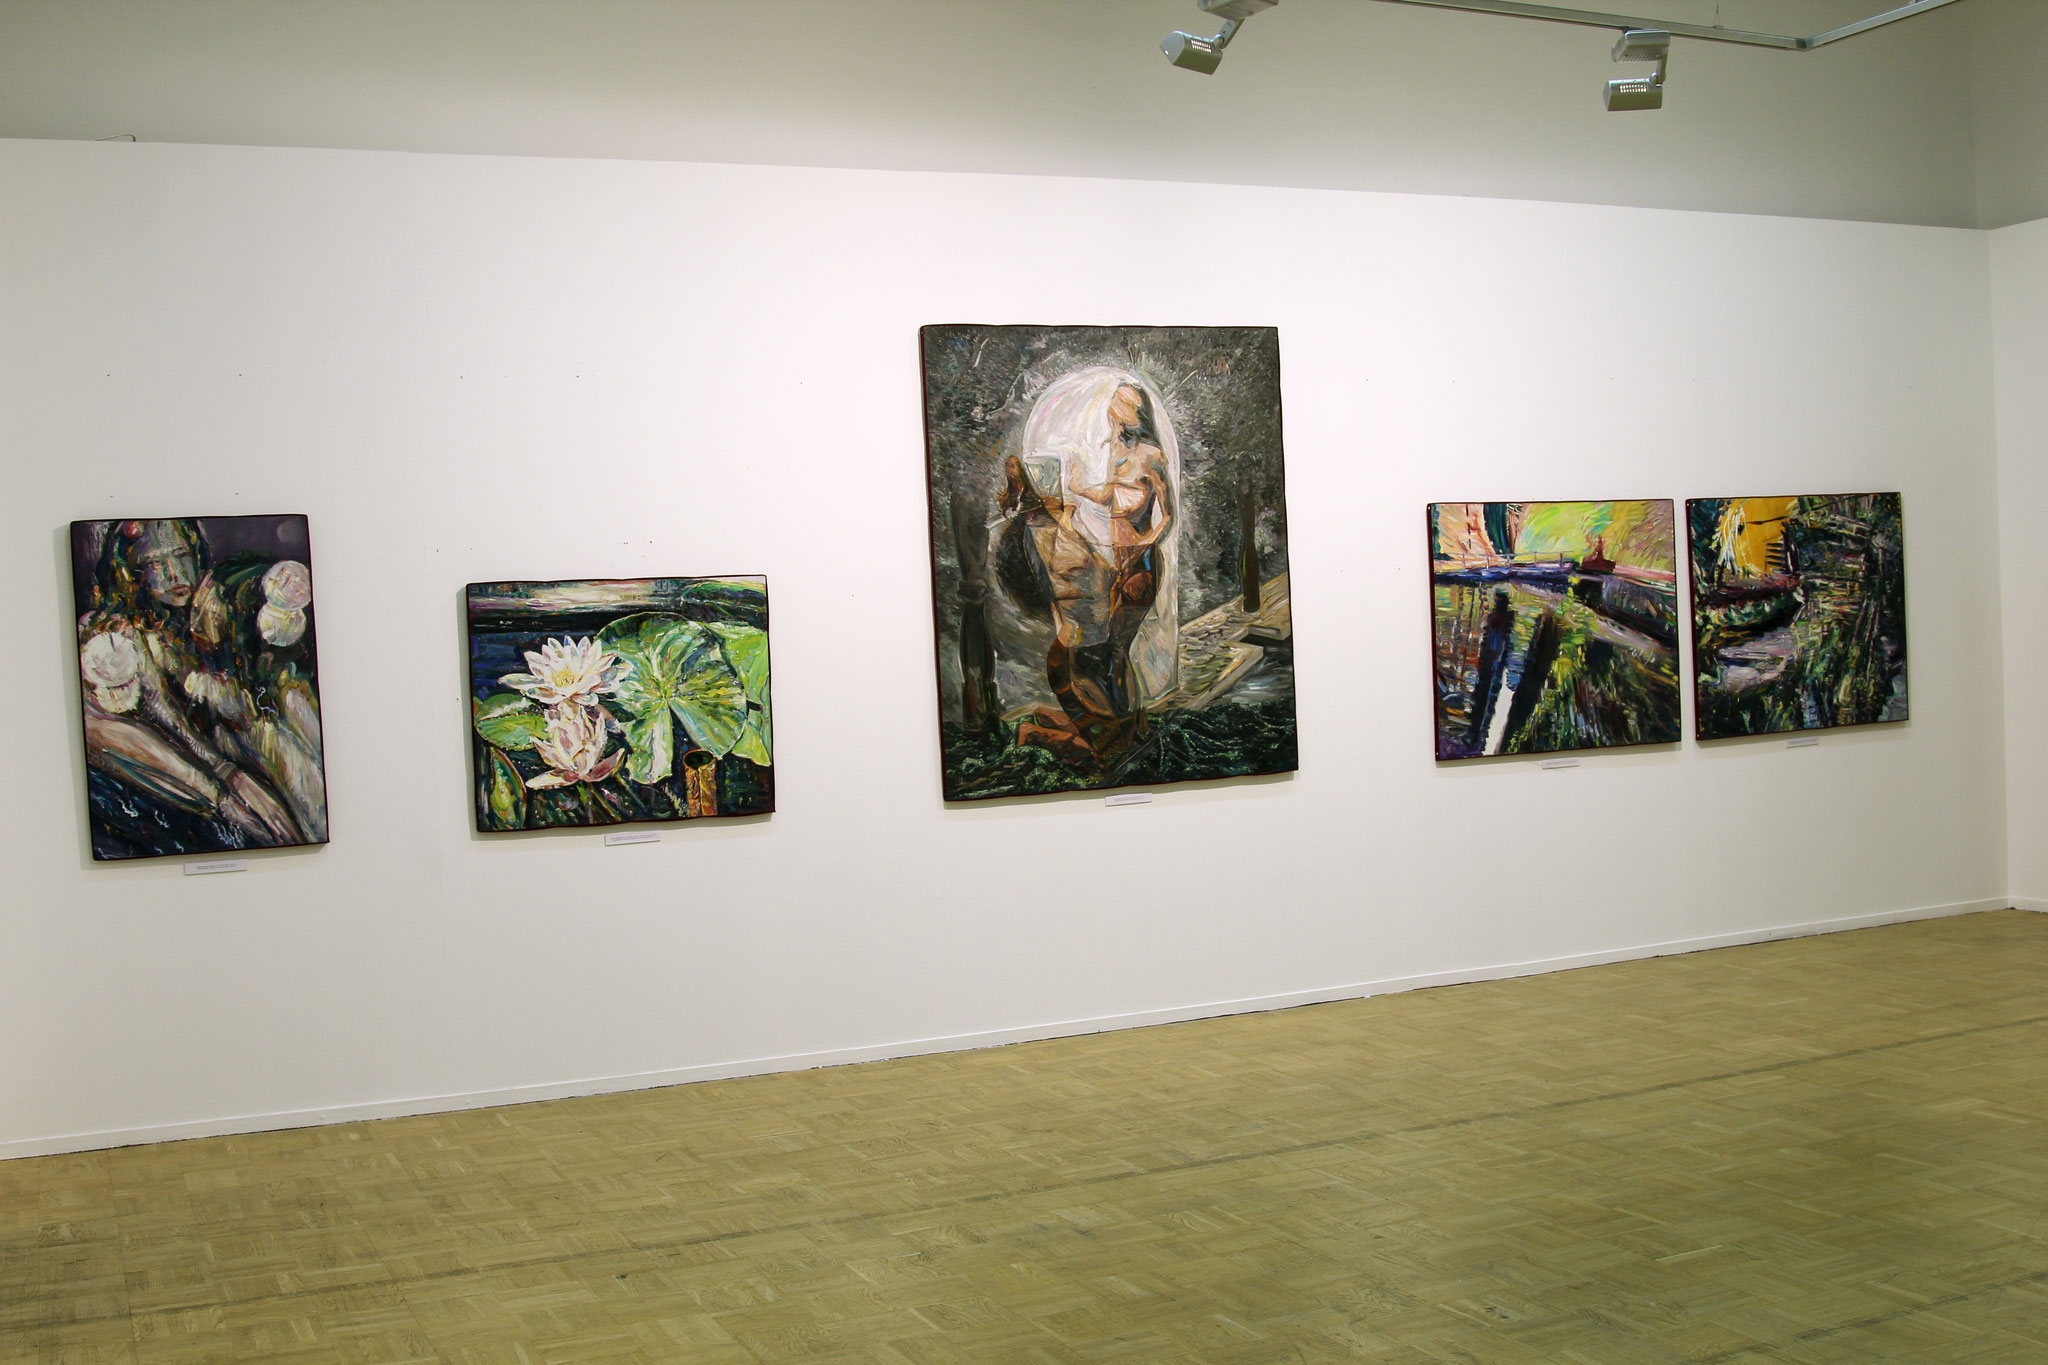 The exhibition 'Miramare'. The Central House of Artists, Moscow, 13.07-31.07.2011